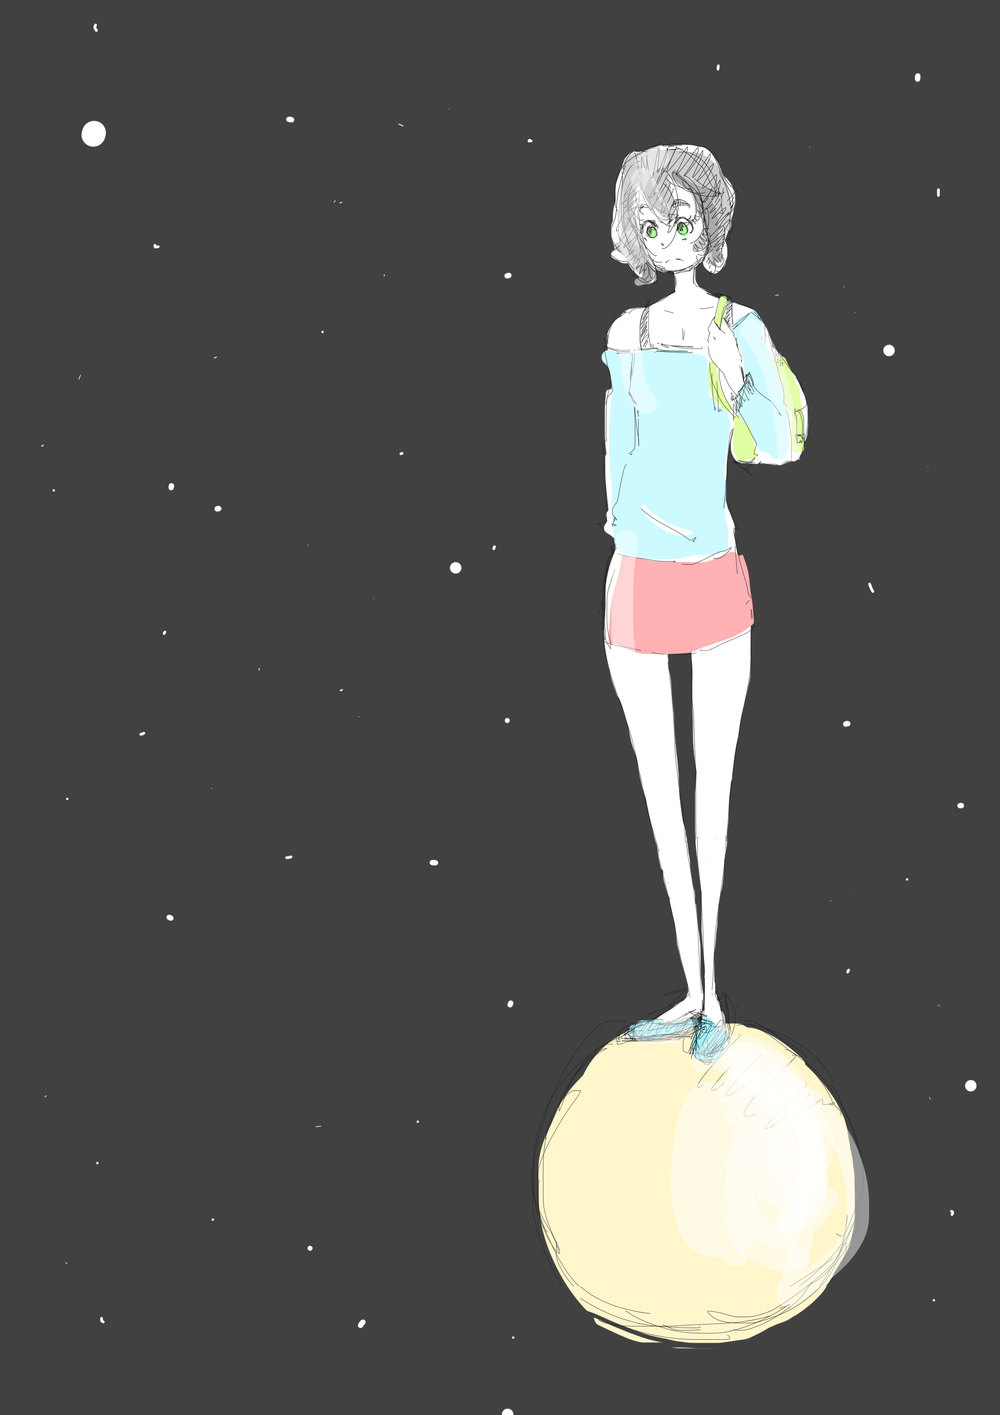 girl-on-the-moon.jpg